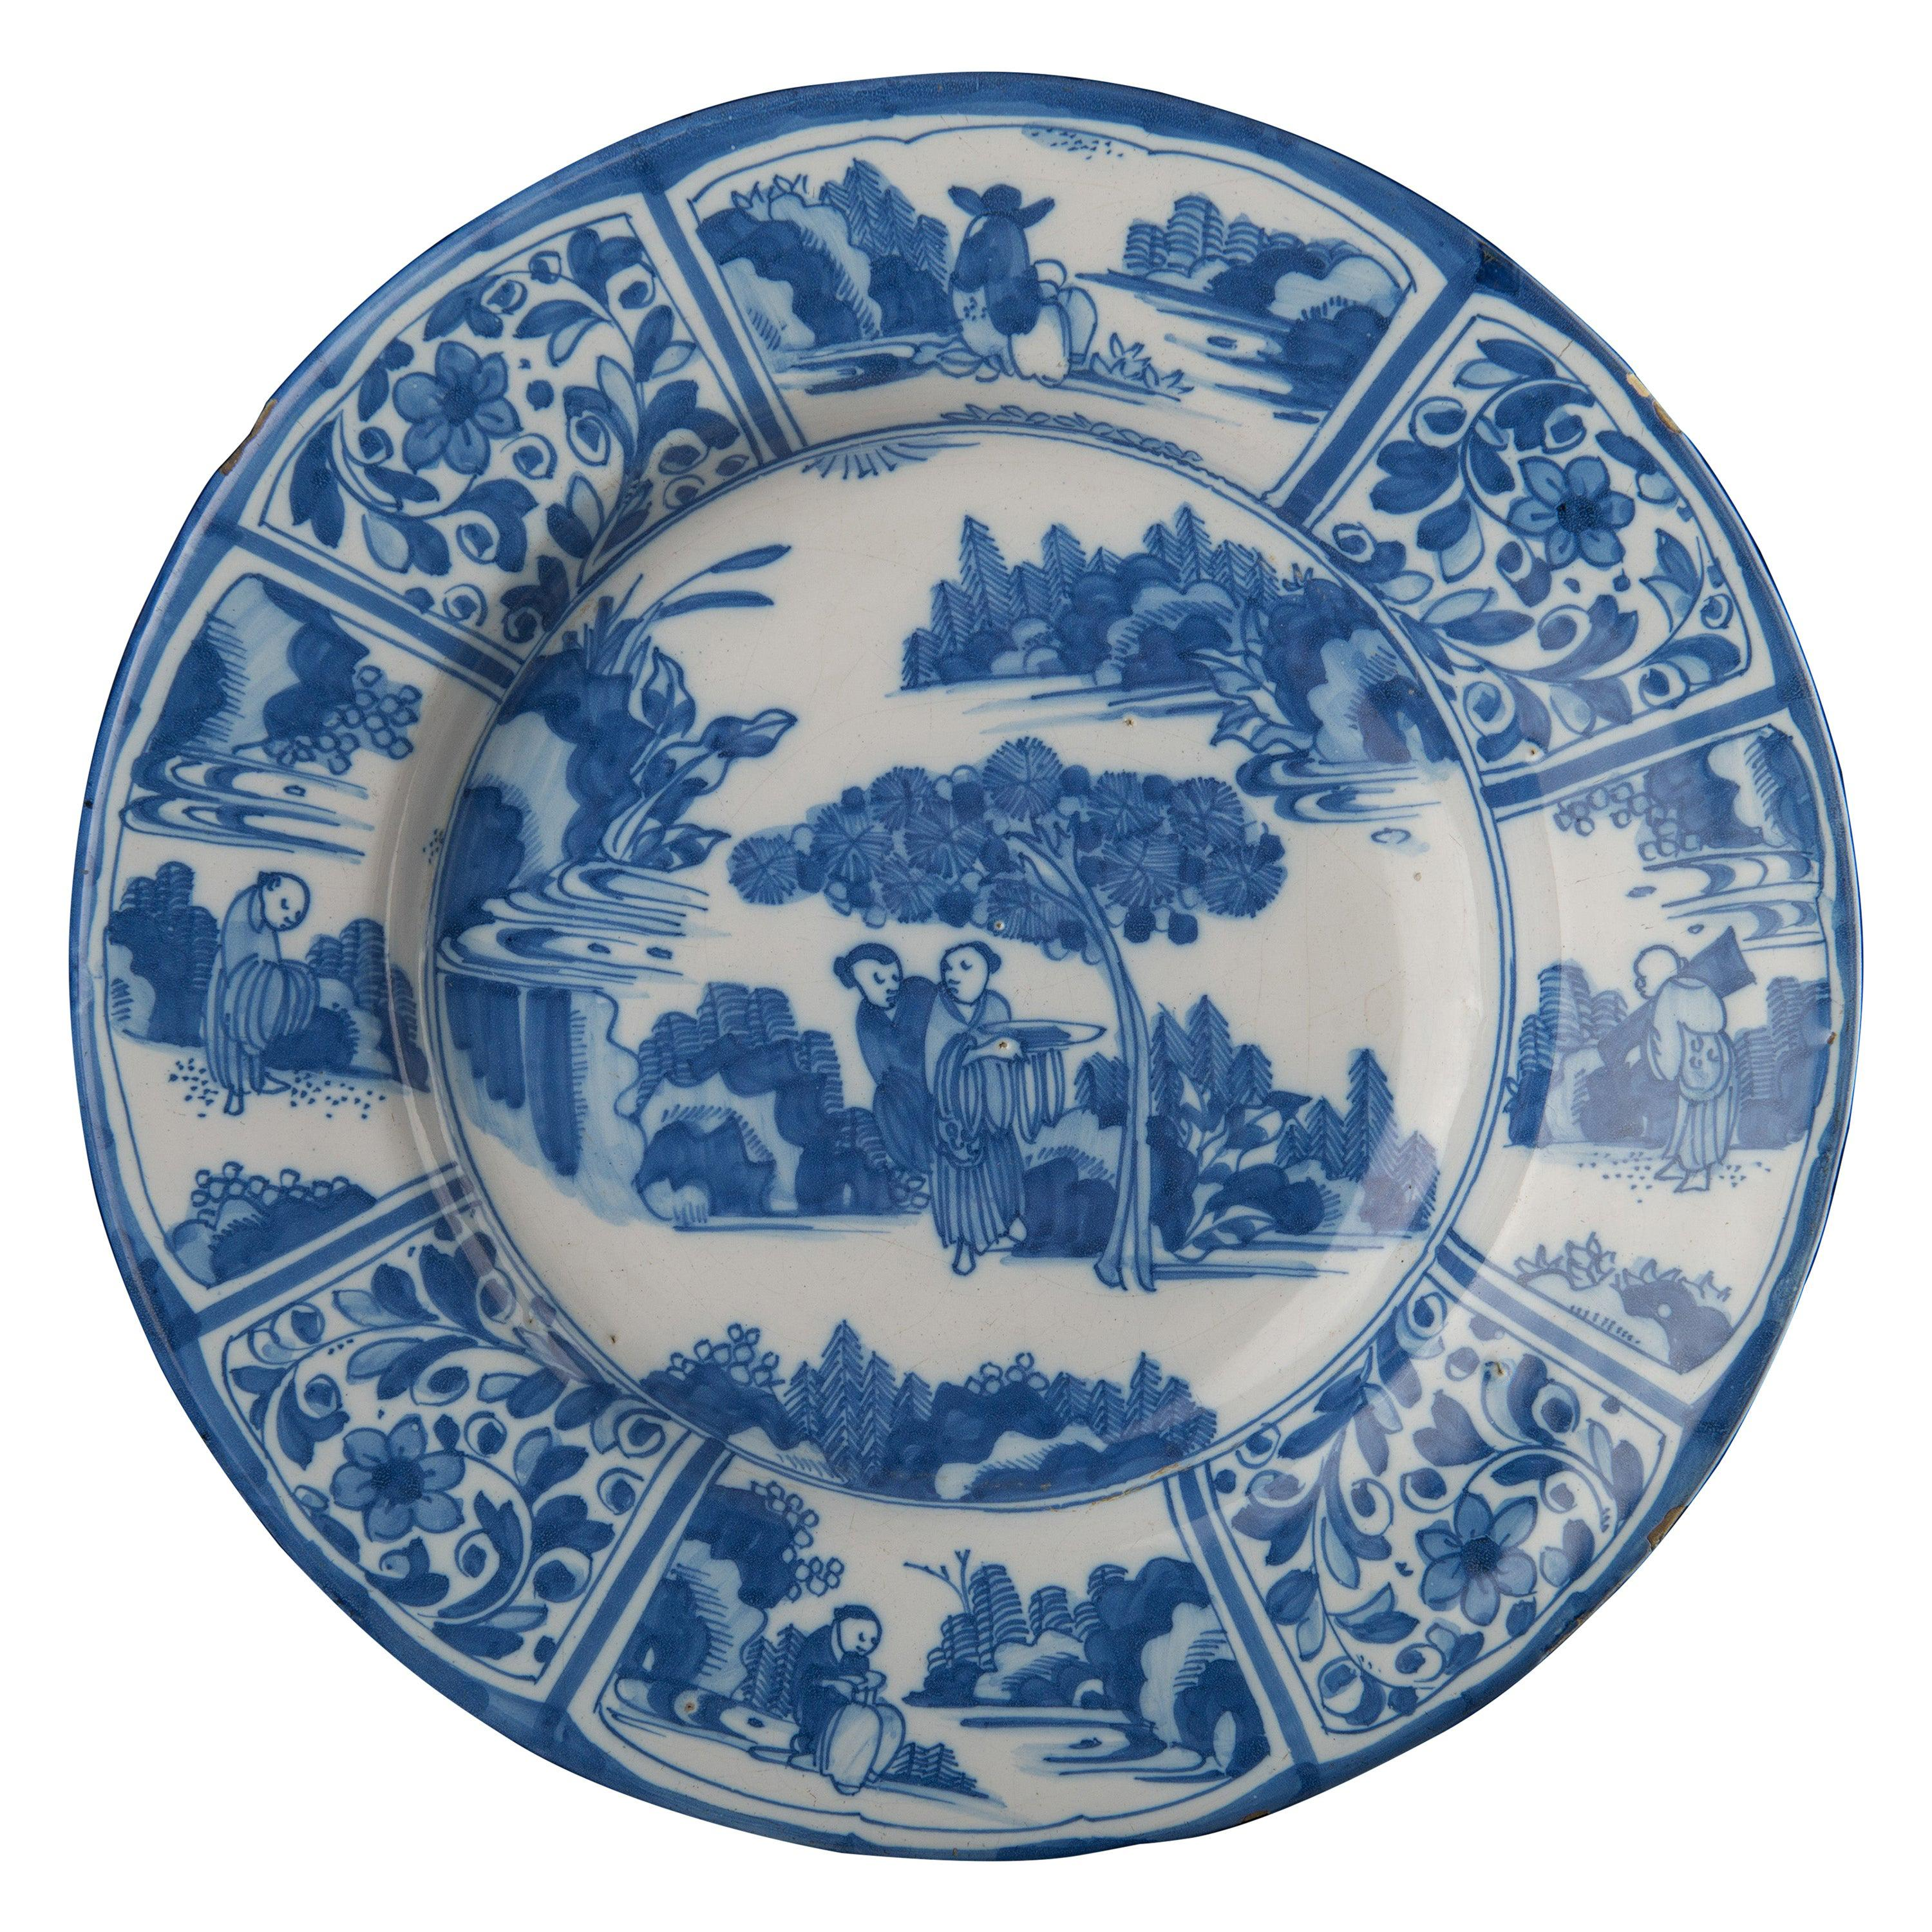 Delft, Large Blue and White Chinoiserie Dish, 1670